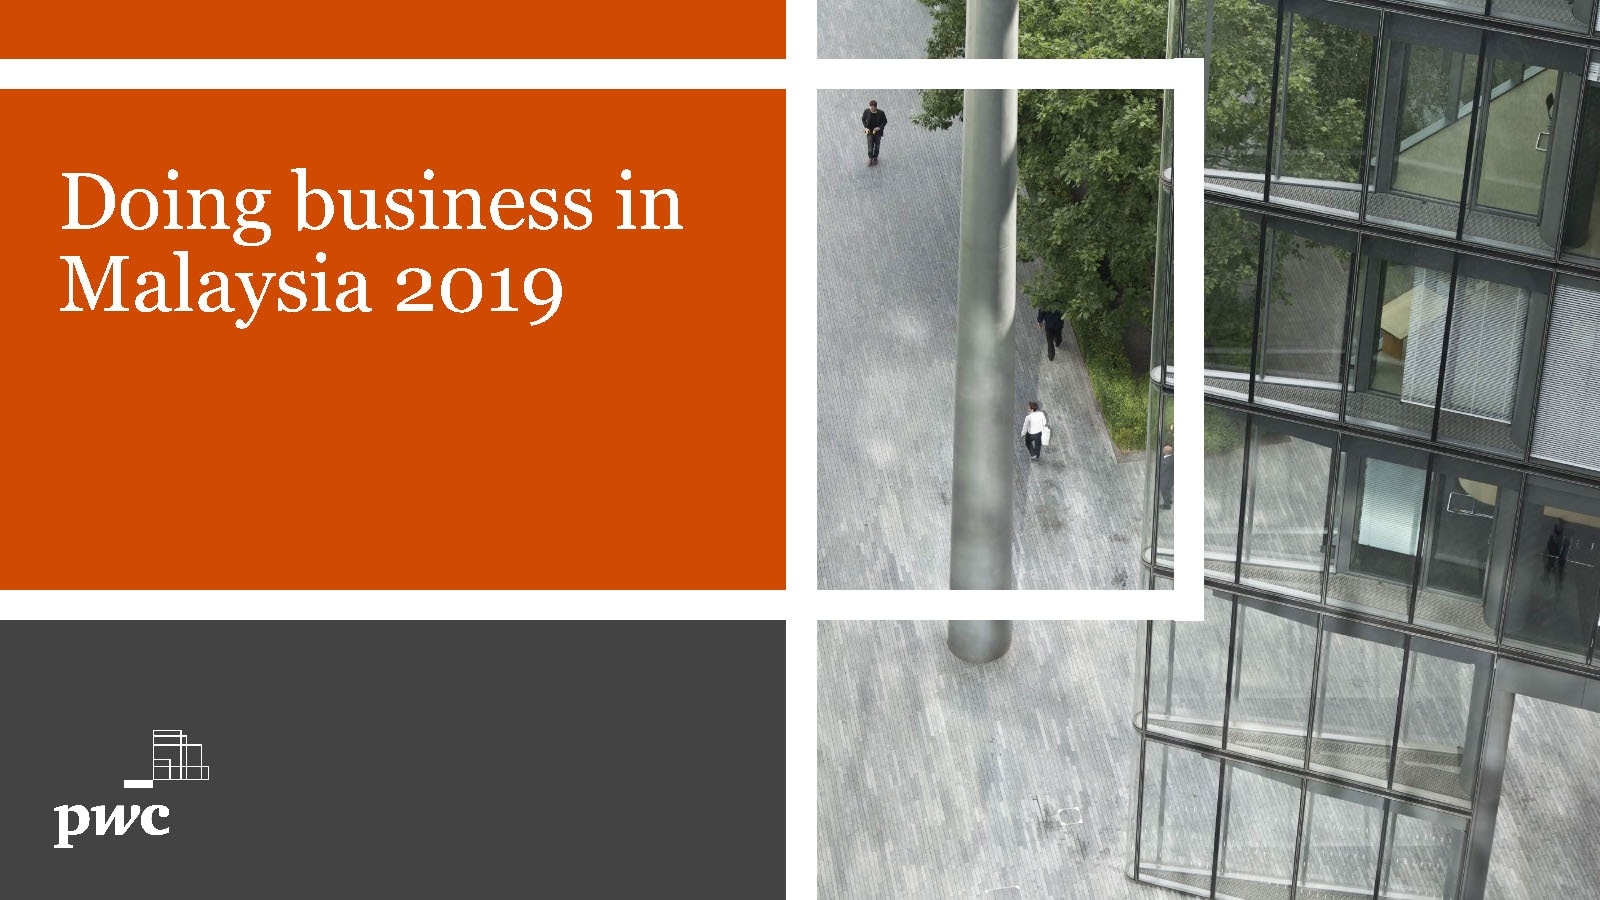 Doing business in Malaysia 2019